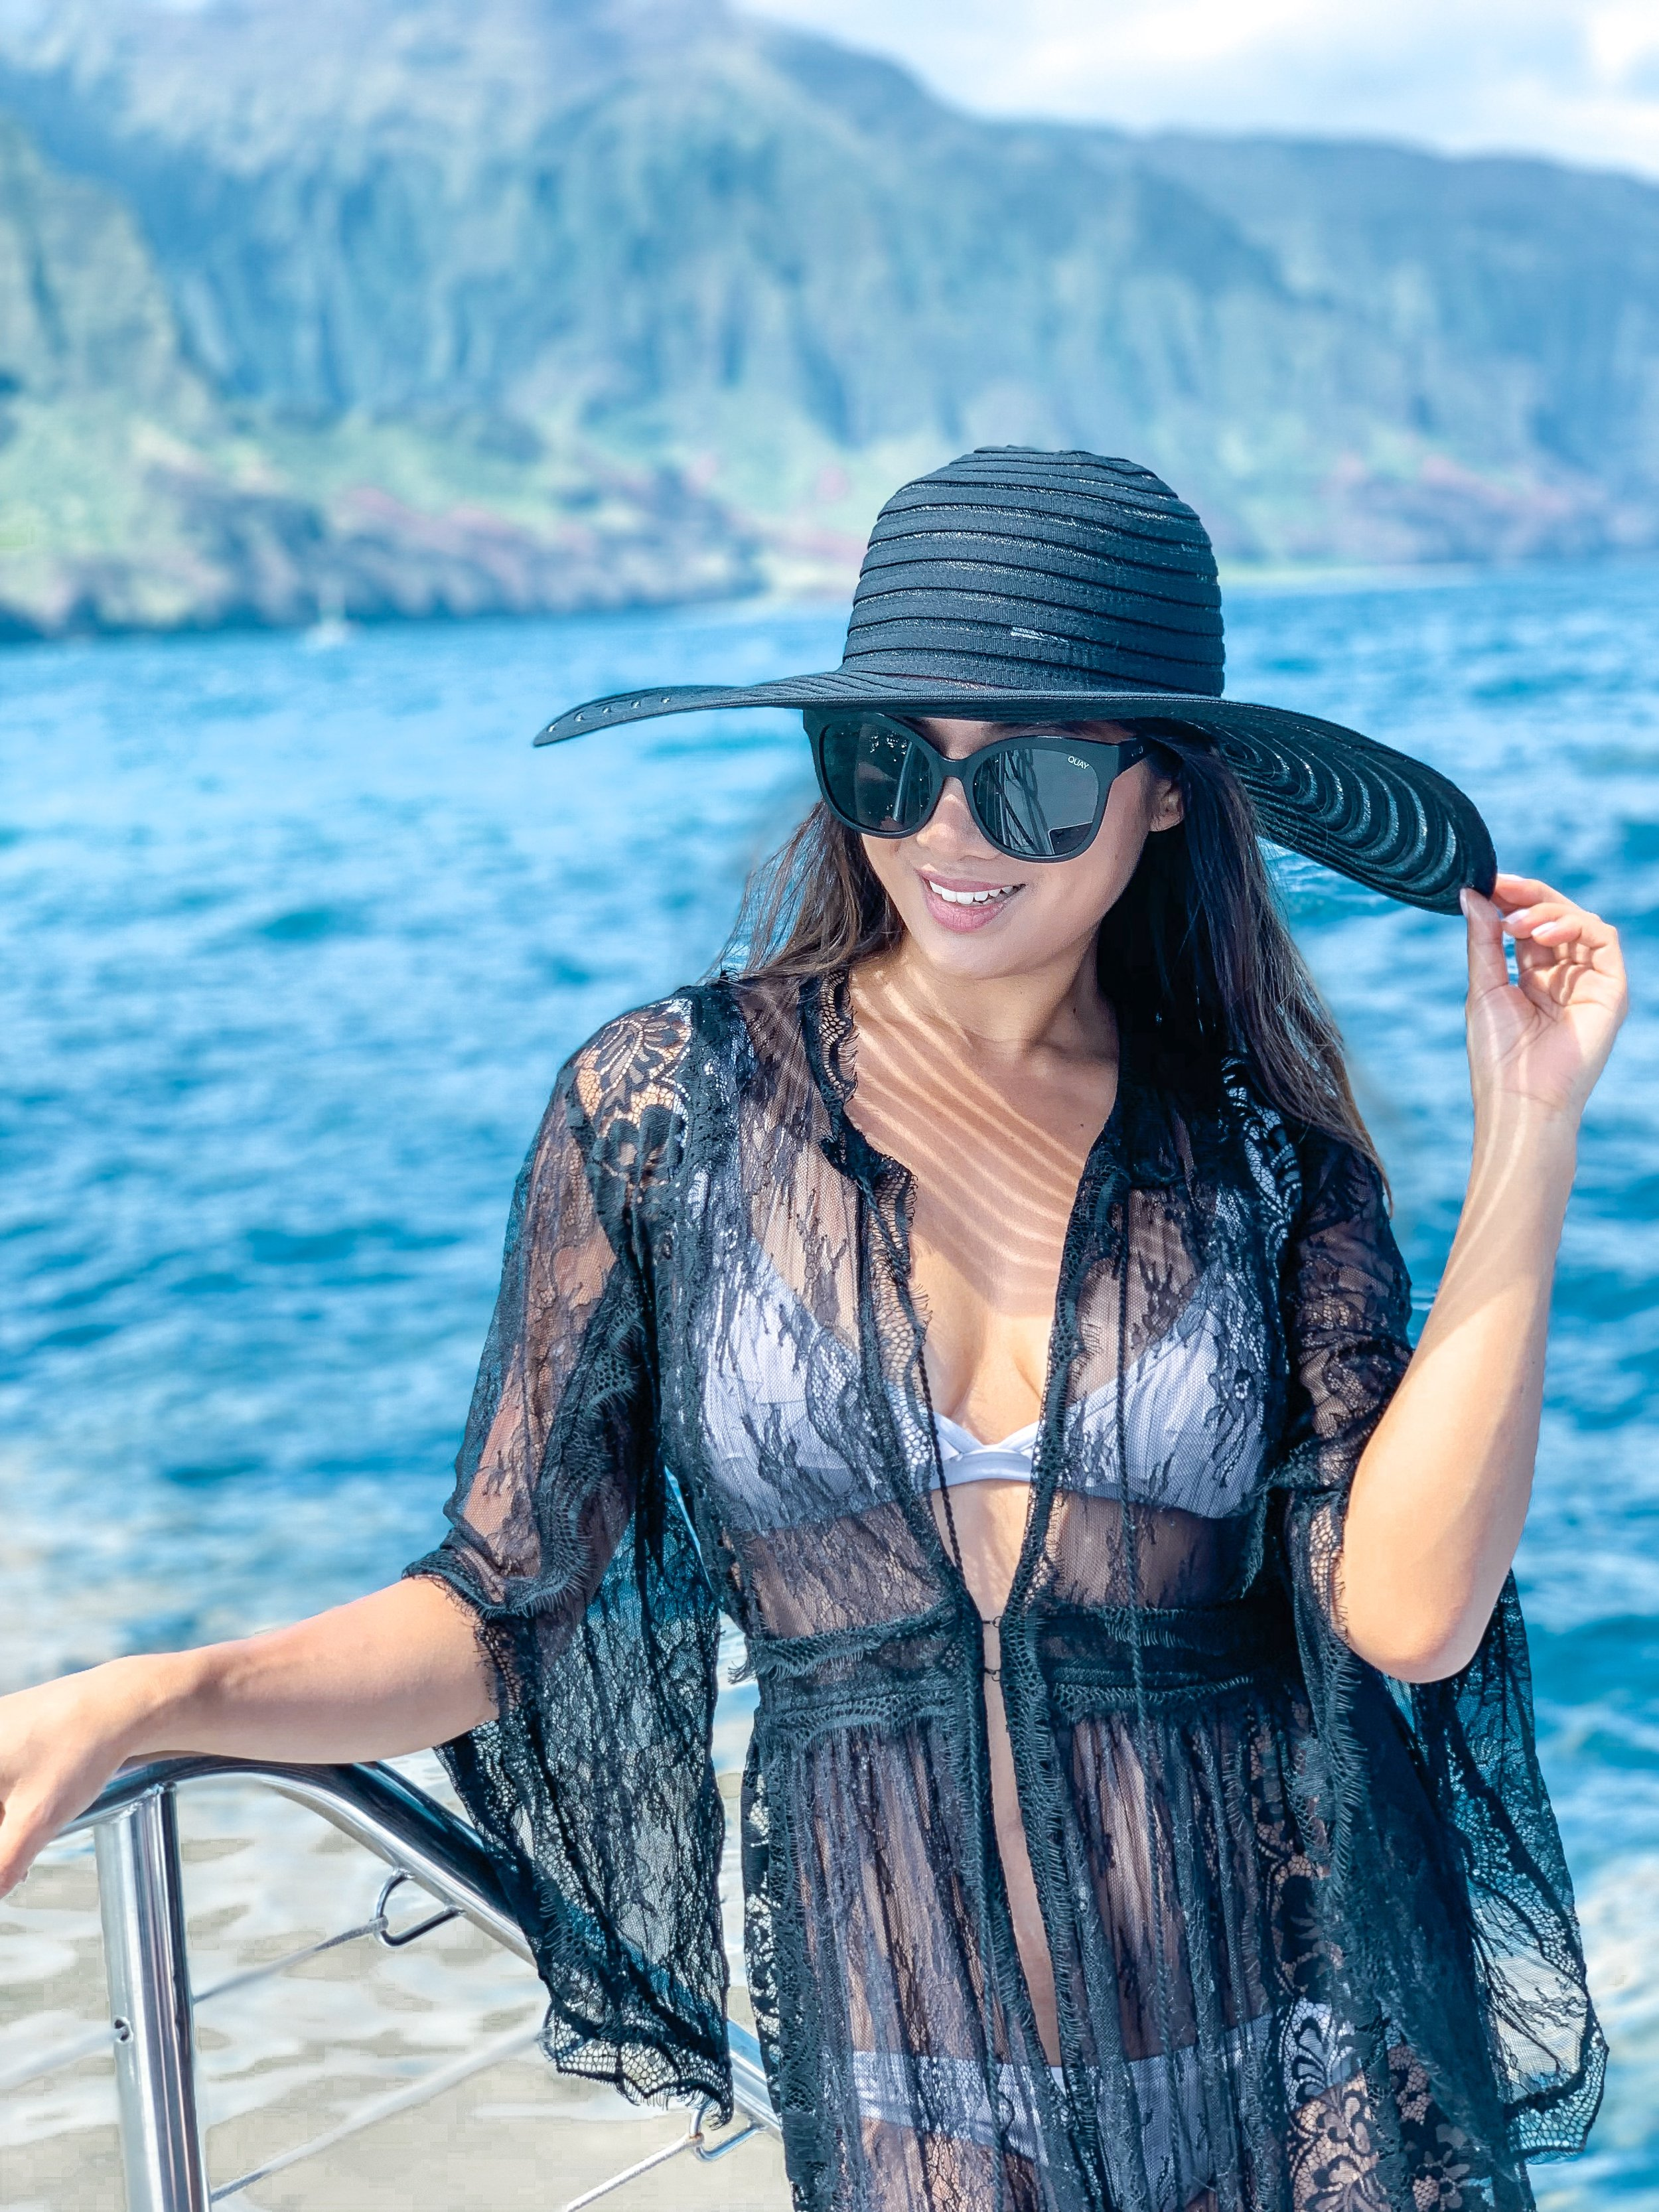 On Captain Andy's Boat Tour: Shop my look:   kimono  ,   hat  ,   sunnies  ,   swimsuit